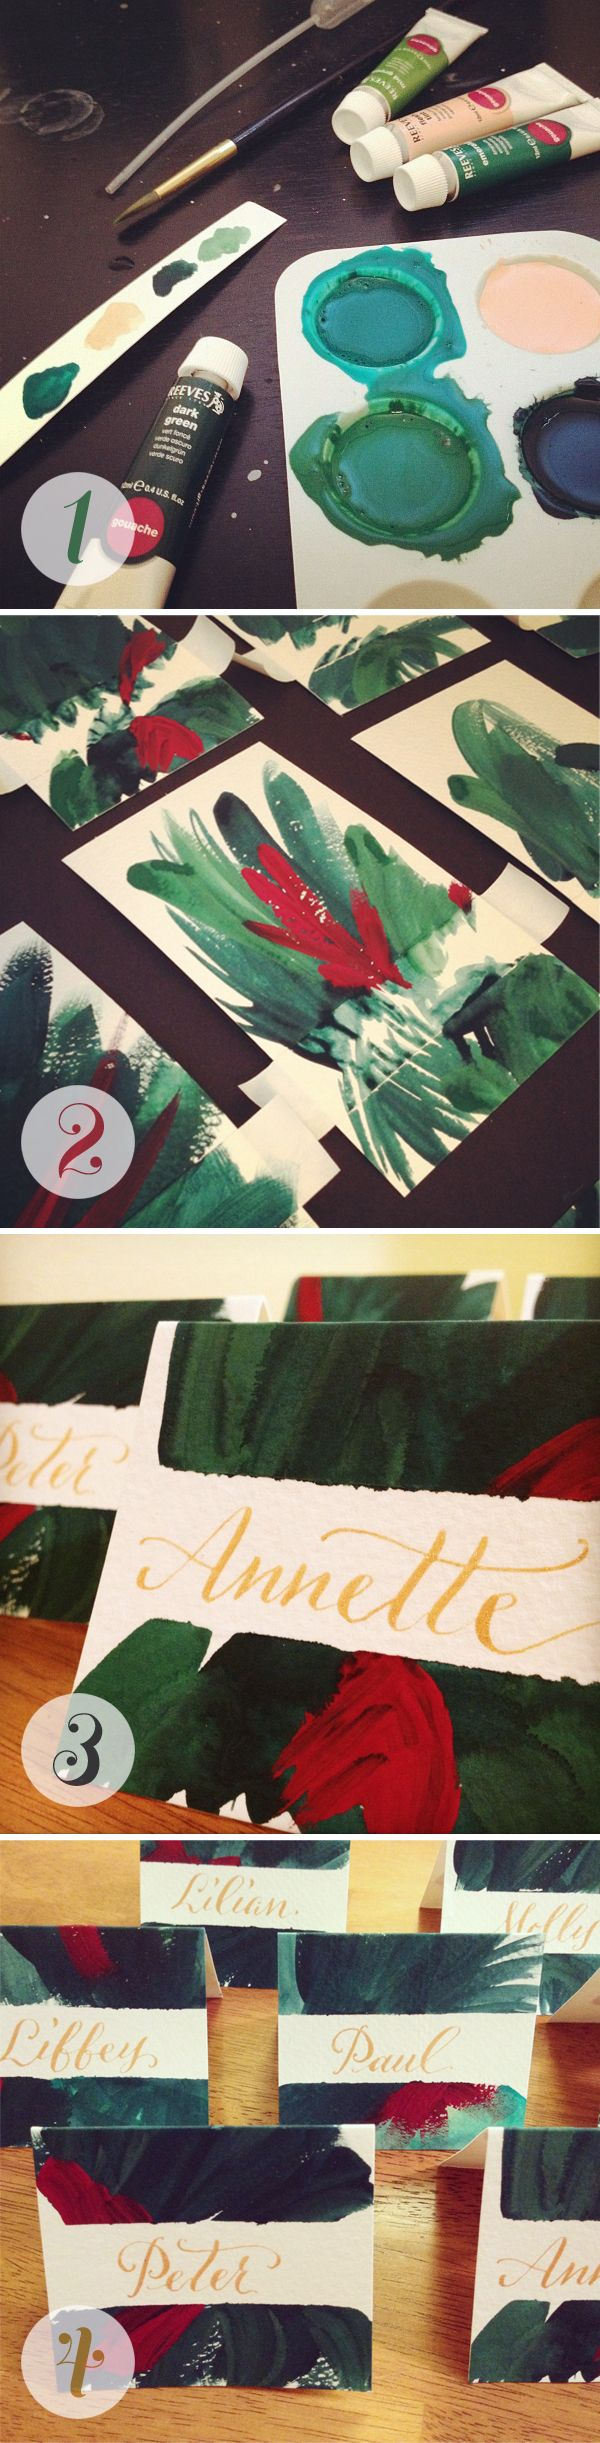 plurabelle-calligraphy-christmas-place-cards